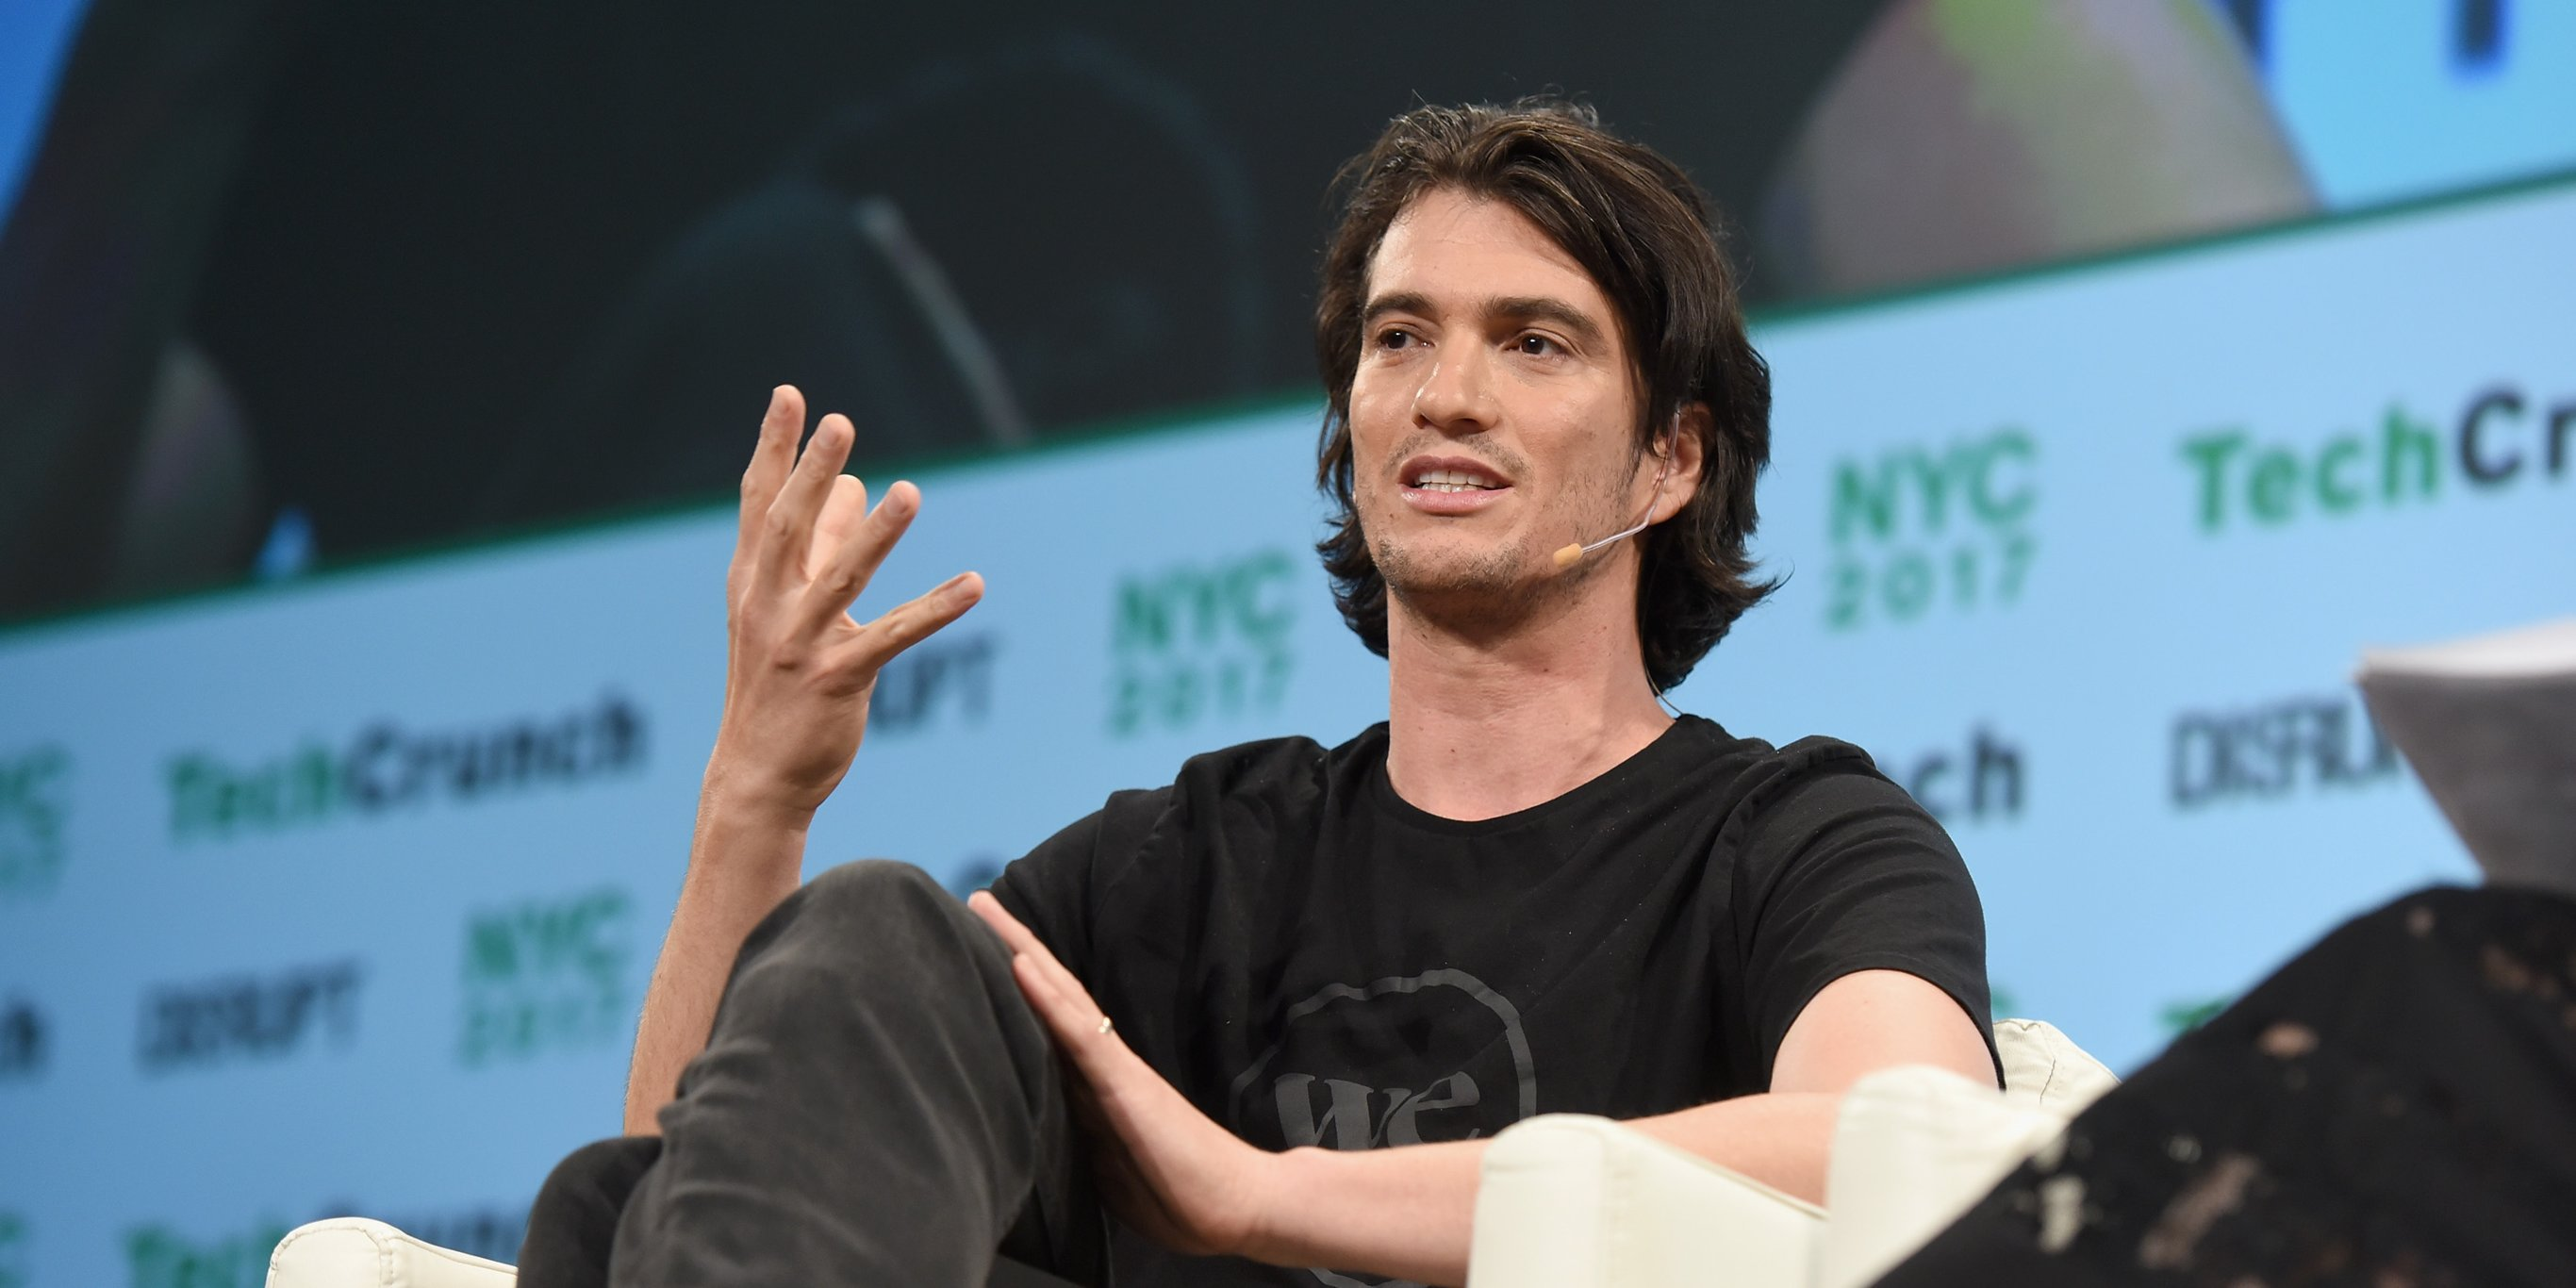 WeWork's board meets today to discuss pushing out Adam Neumann — and his alleged 'self-dealing' and marijuana use may be come into play